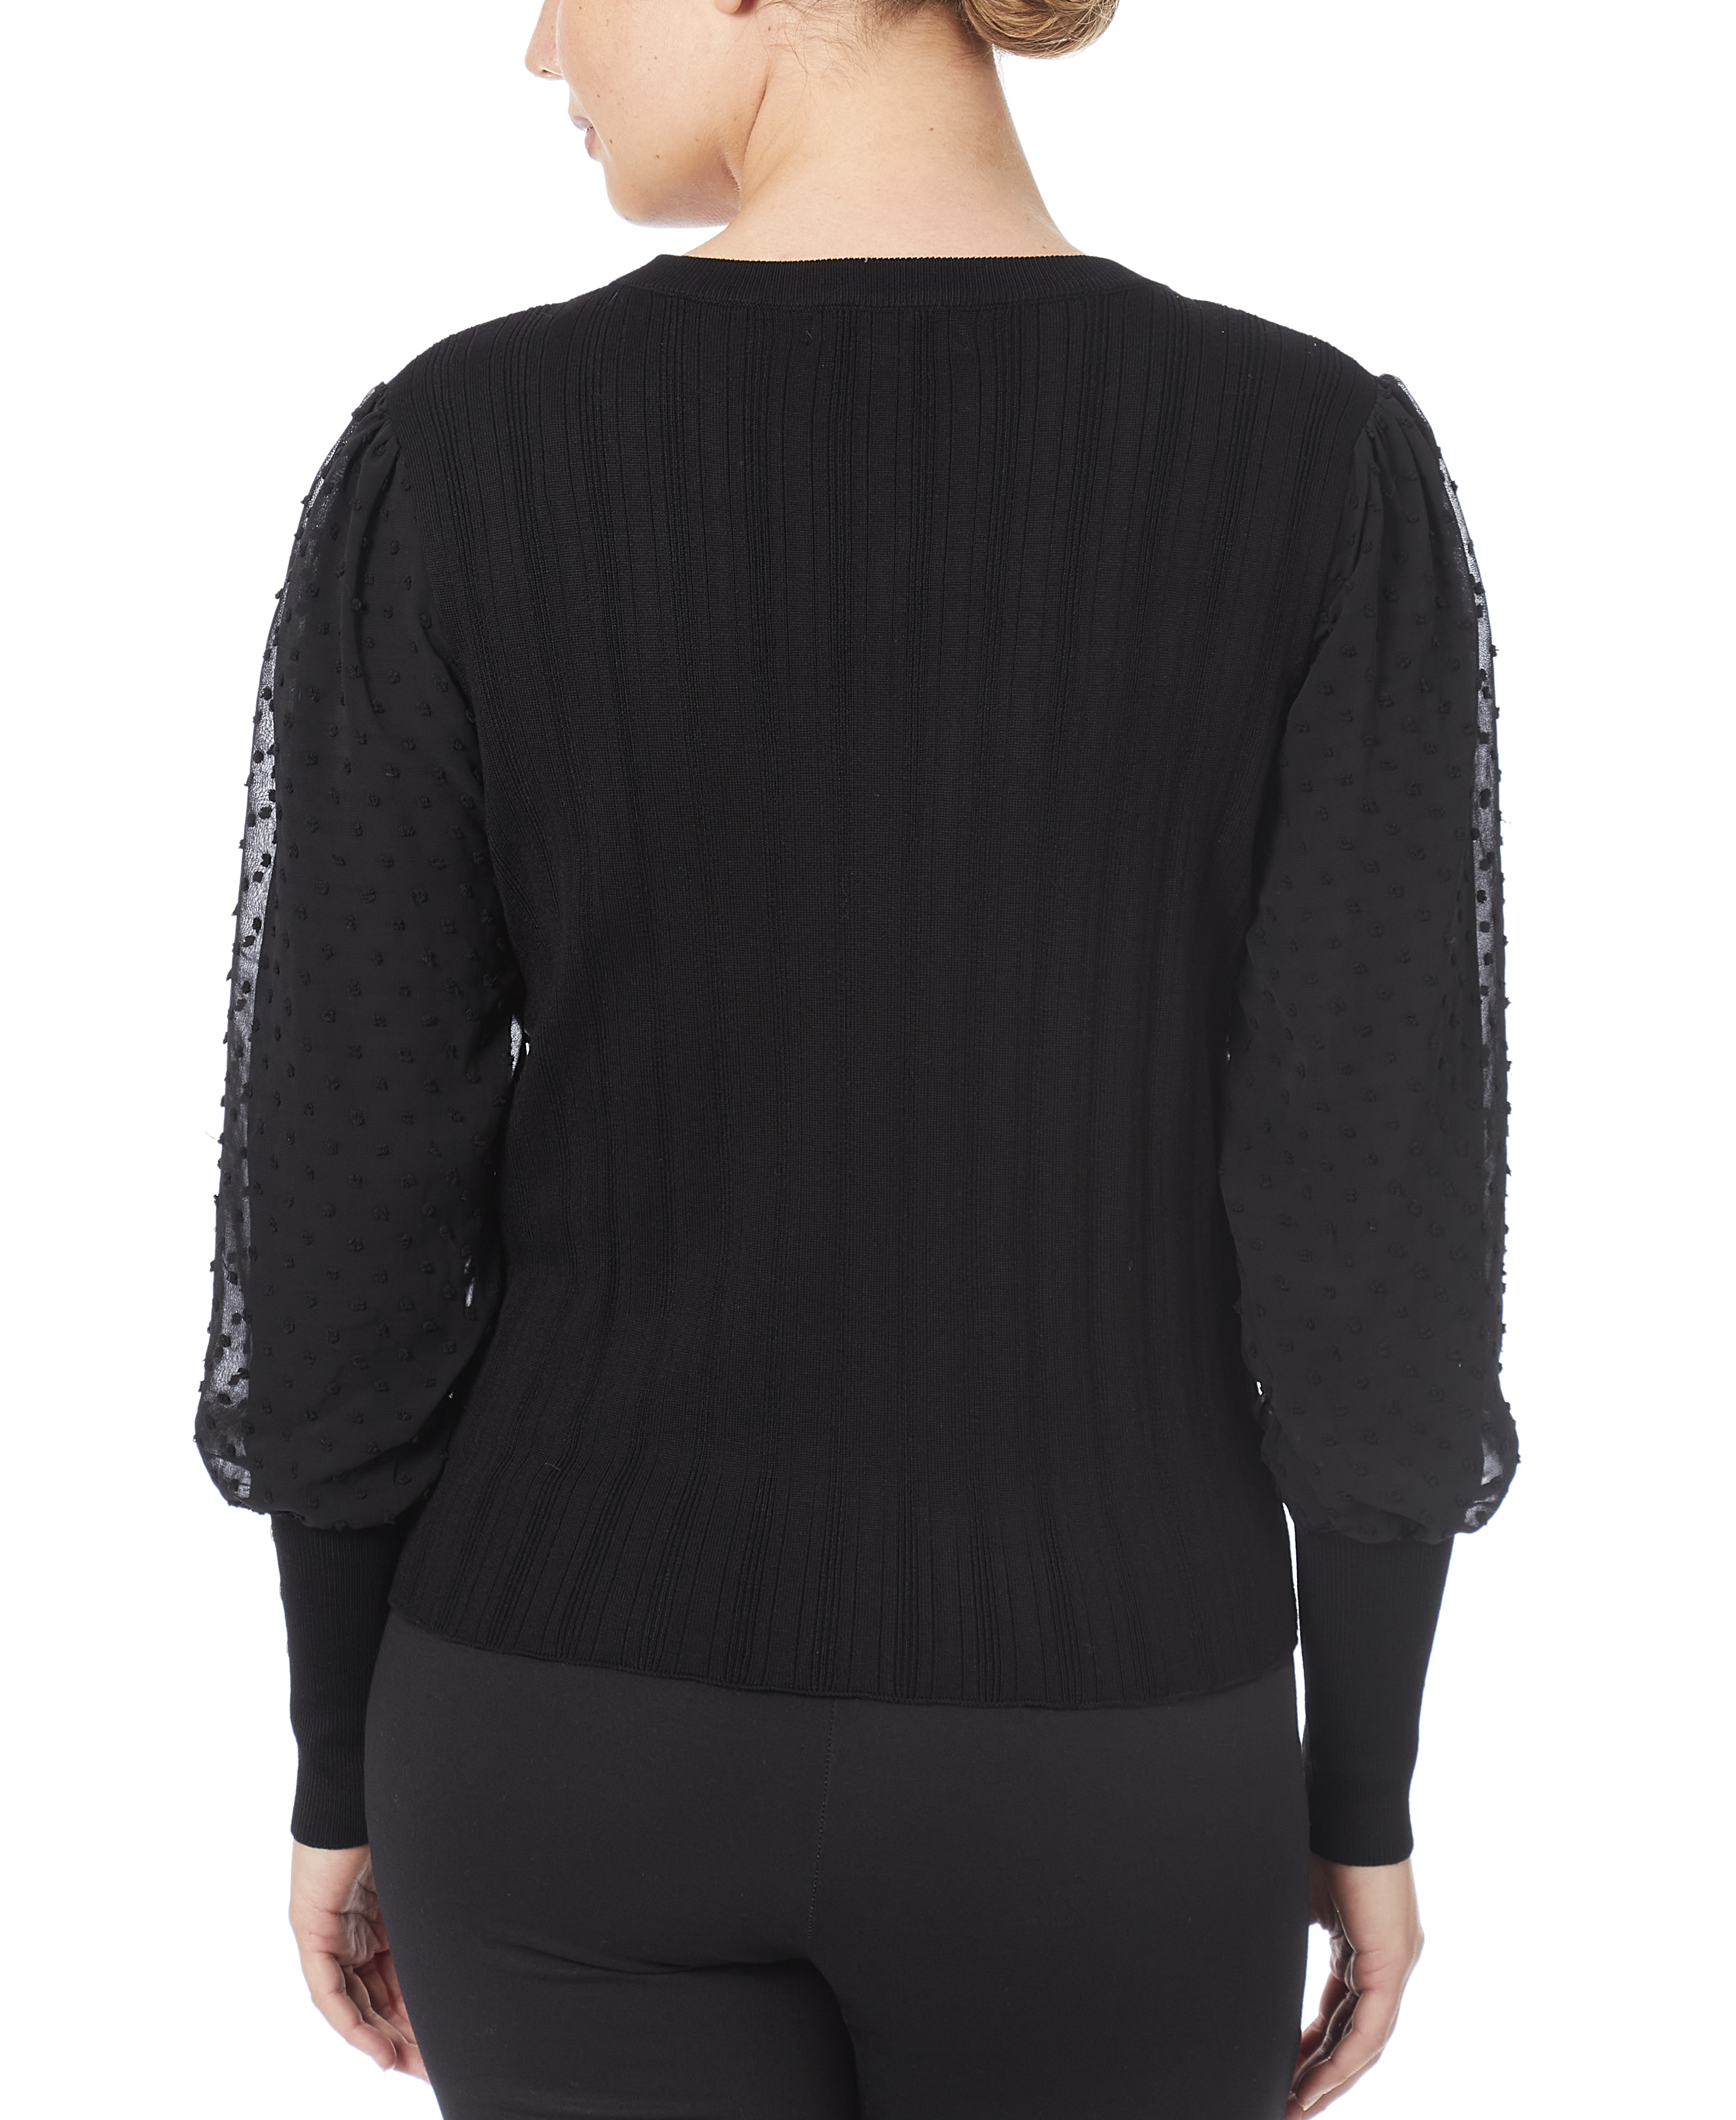 Mixed-Media Sweater in Black